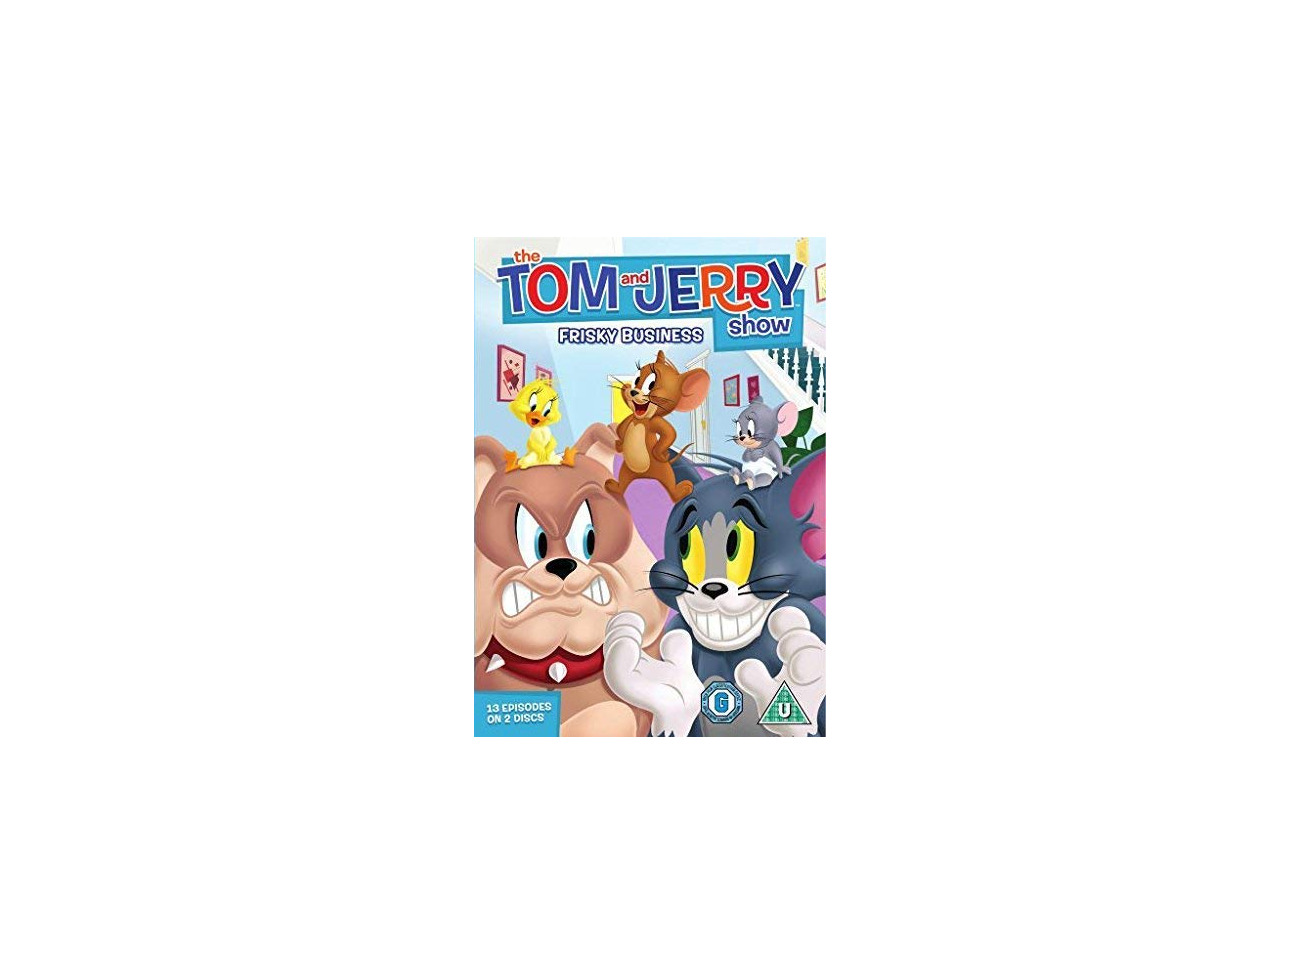 Buy The Tom and Jerry Show - Season 1 Part 1 [DVD] [2014